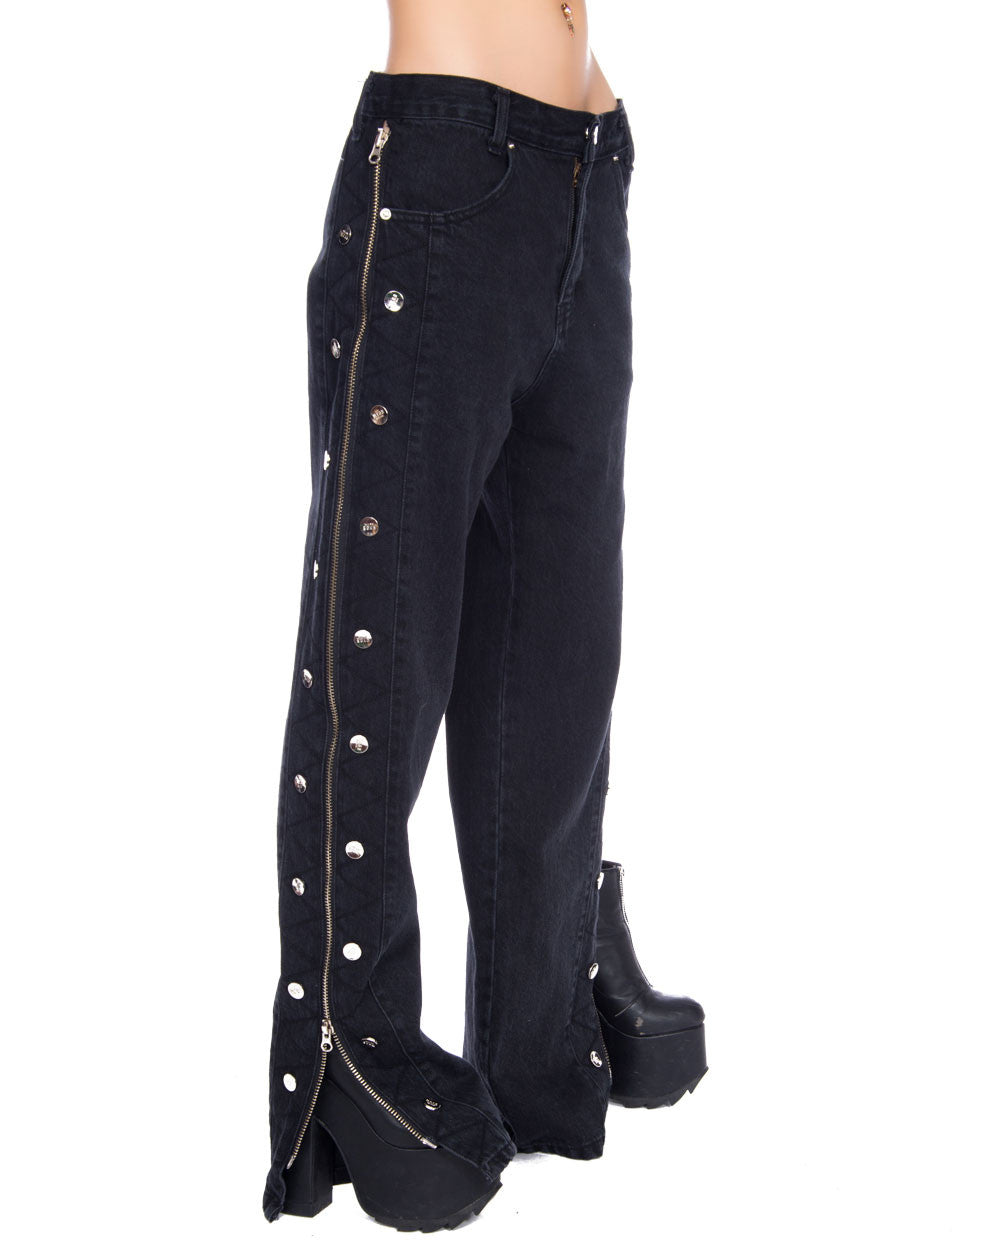 SIDE ZIP SNAP PANTS - Eros Mortis